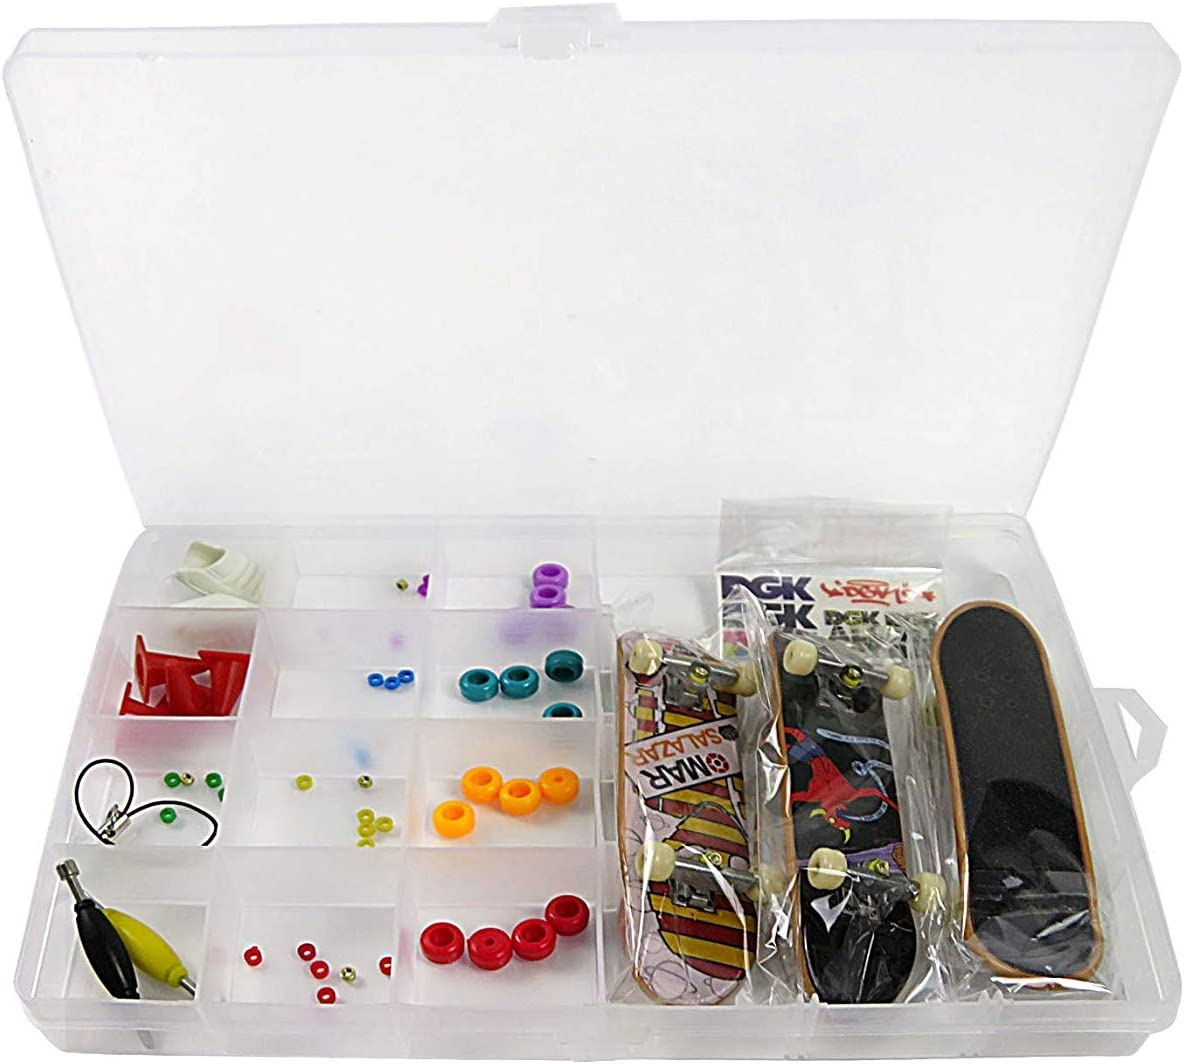 Nuoyi DIY Fingerboard Toy with Nuts Trucks Tool Kit Basic Bearing Wheels Obstacles All Packaged in Plastic Box